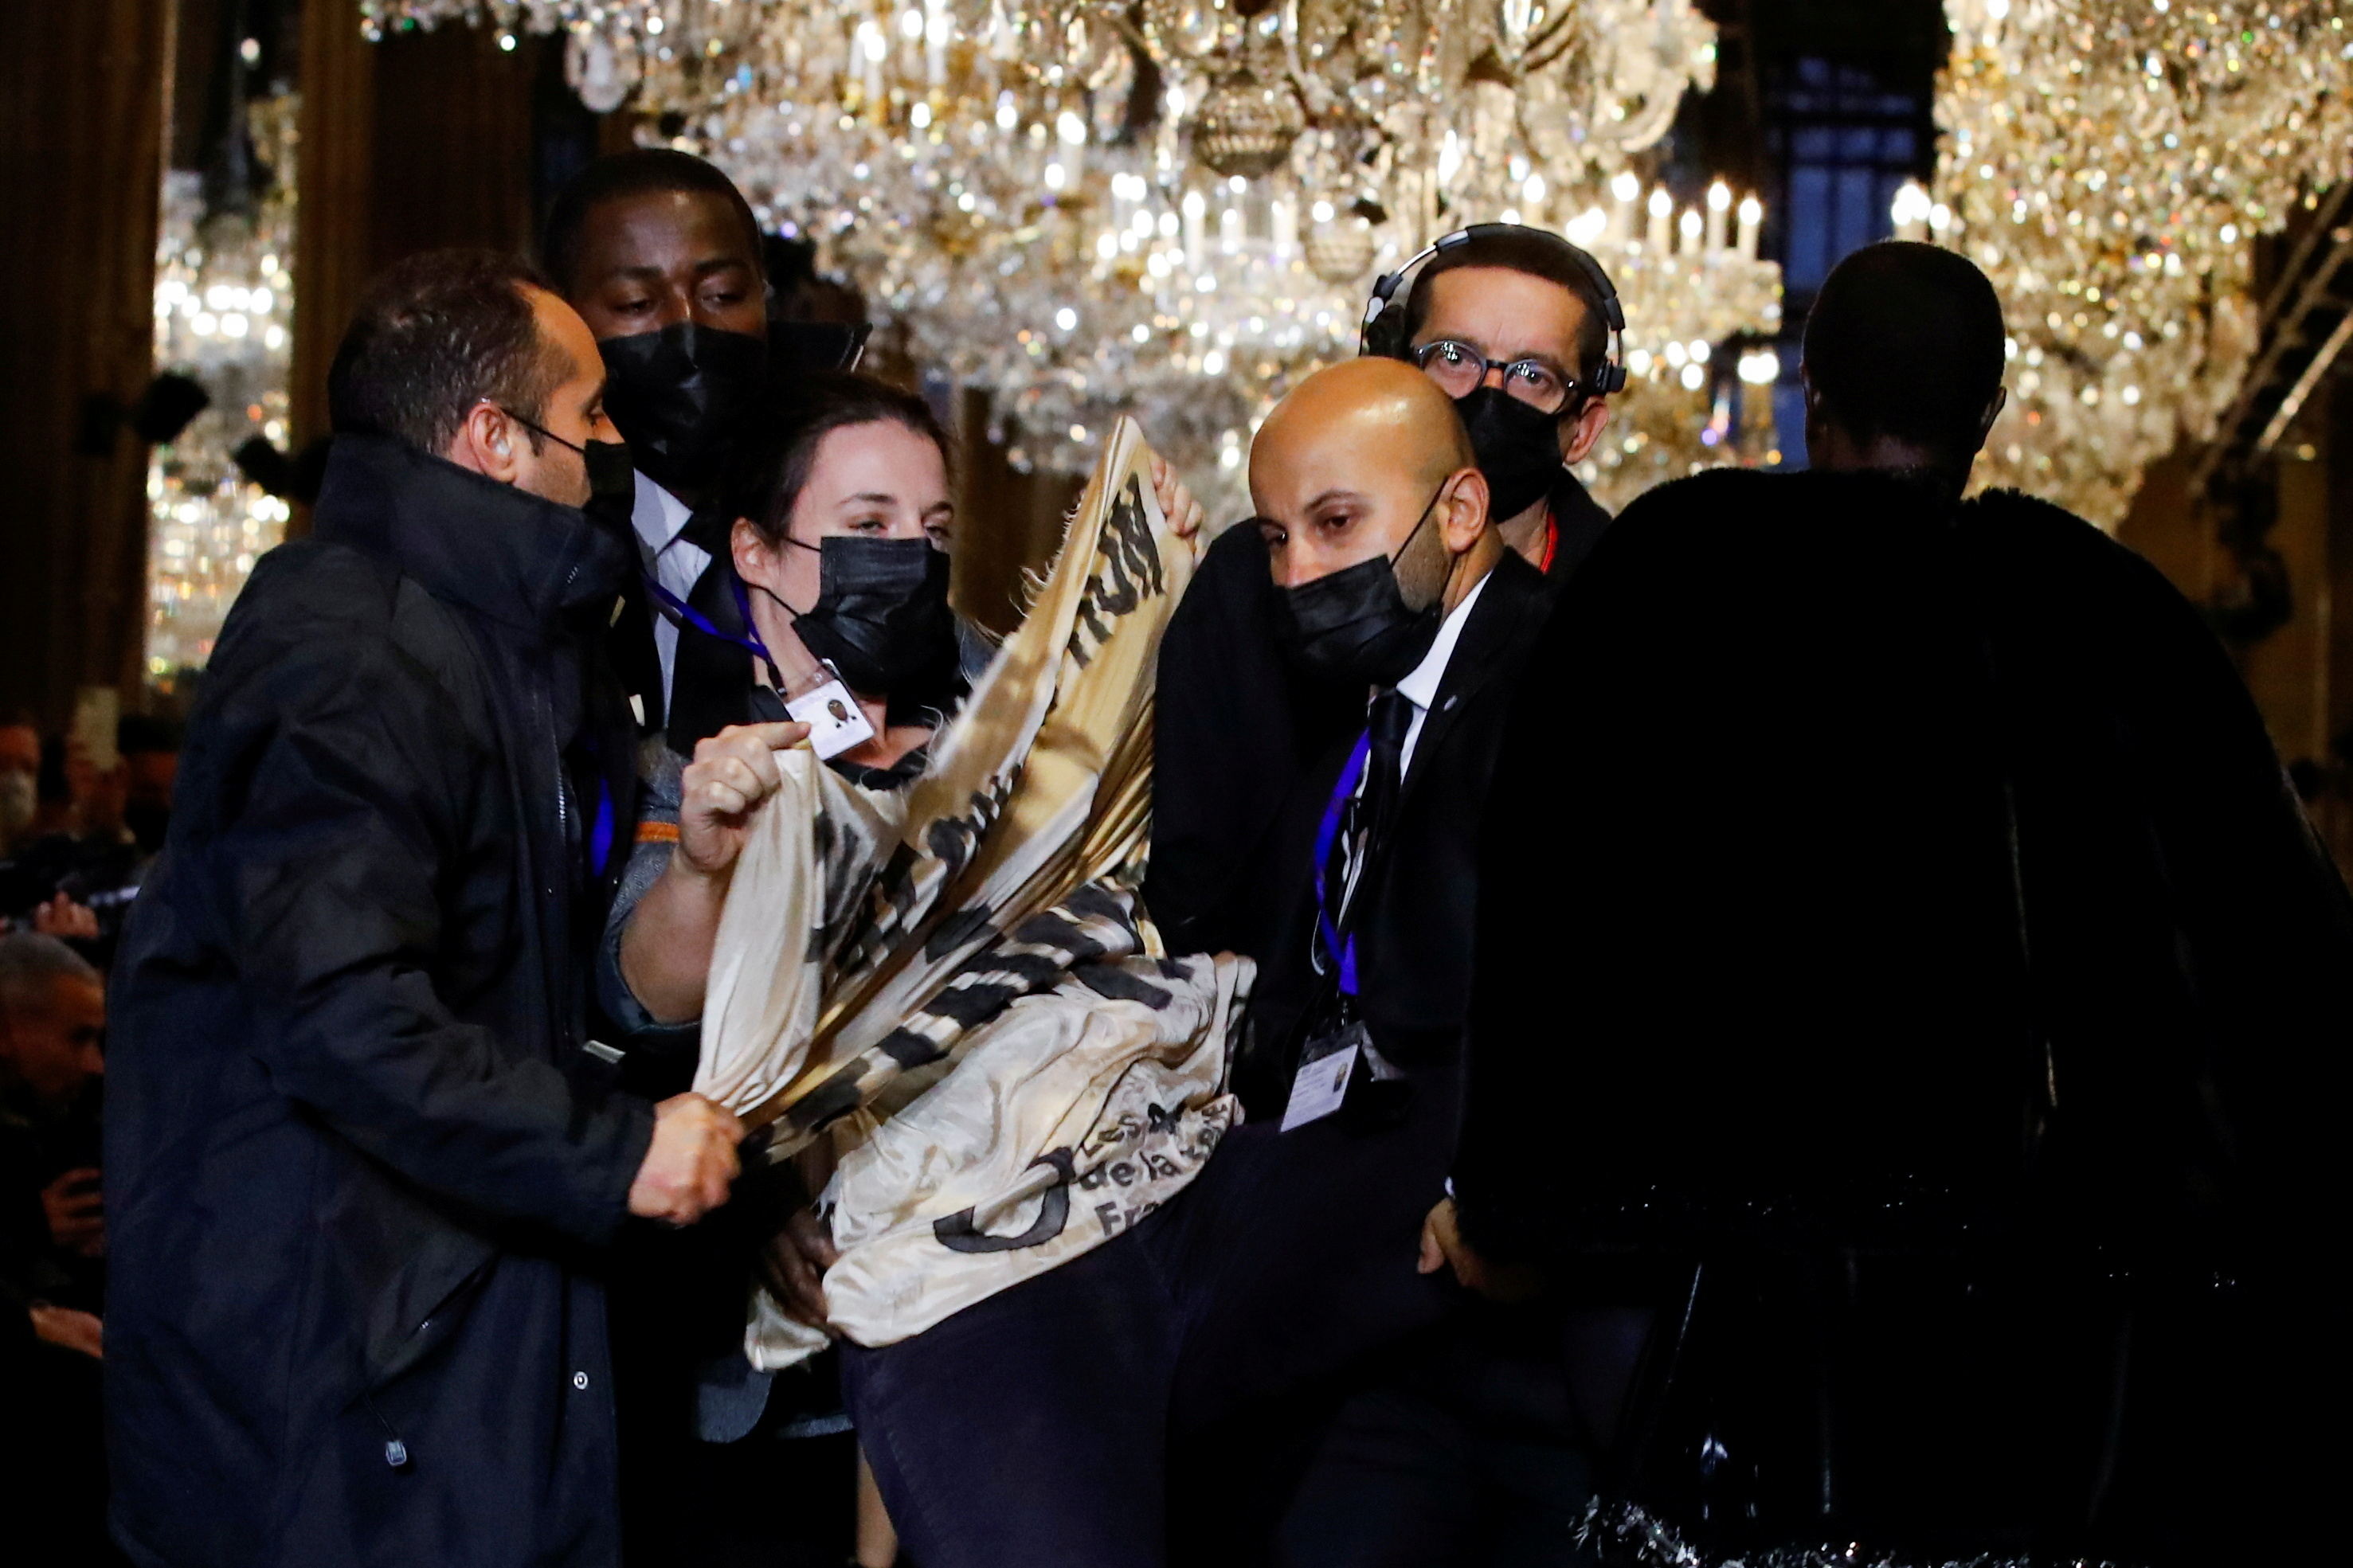 Security personnel remove an activist belonging to the 'Les Amis de la Terre France' or 'Friends of the Earth - France' , who crashed the designer Nicolas Ghesquiere Spring/Summer 2022 women's ready-to-wear collection show for fashion house Louis Vuitton during Paris Fashion Week in Paris, France, October 5, 2021. REUTERS/Gonzalo Fuentes